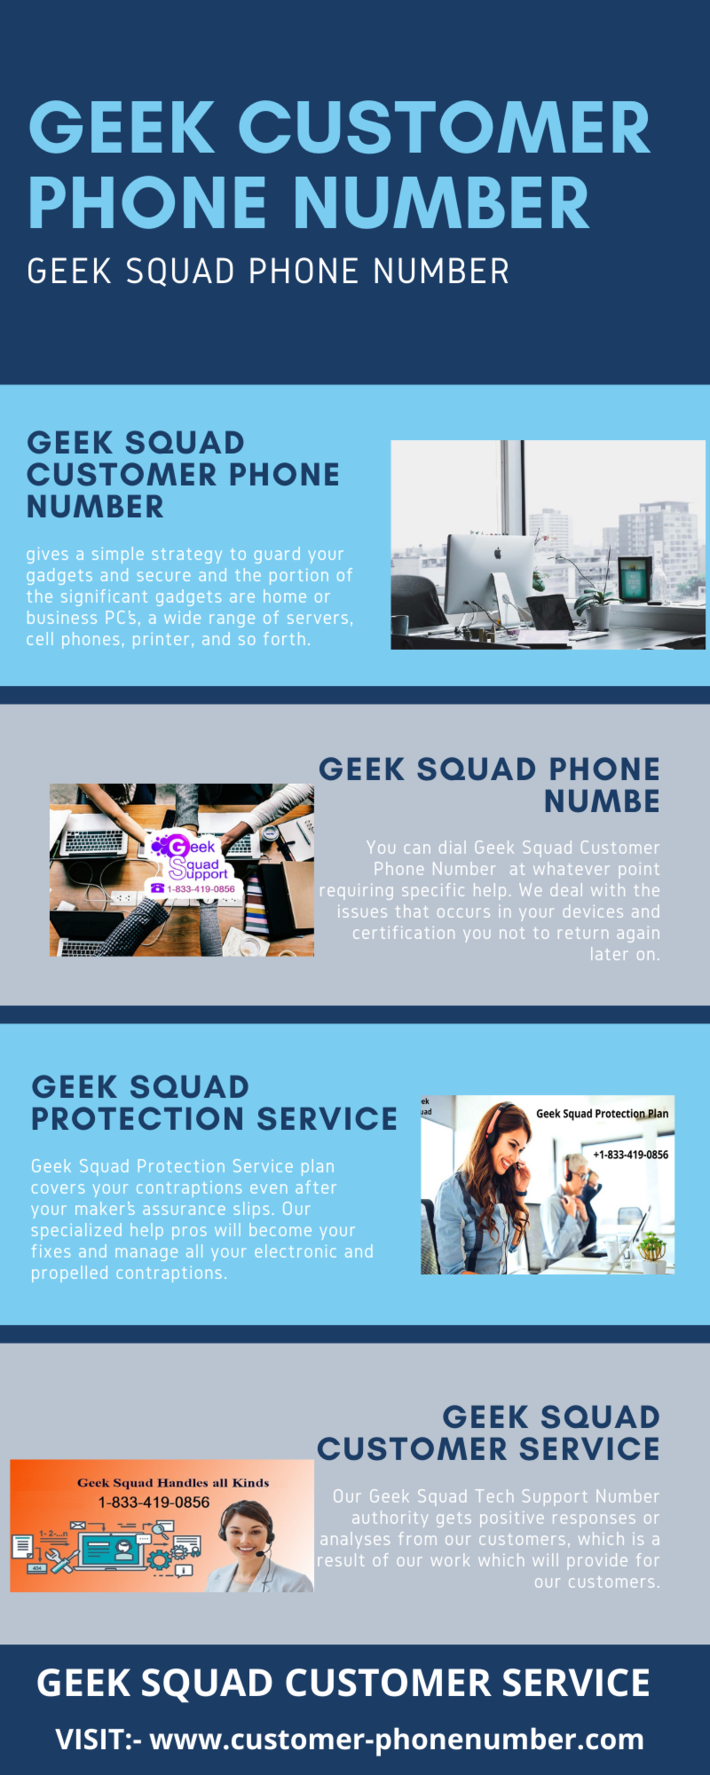 Geek Squad Norton Customer Support in the USA